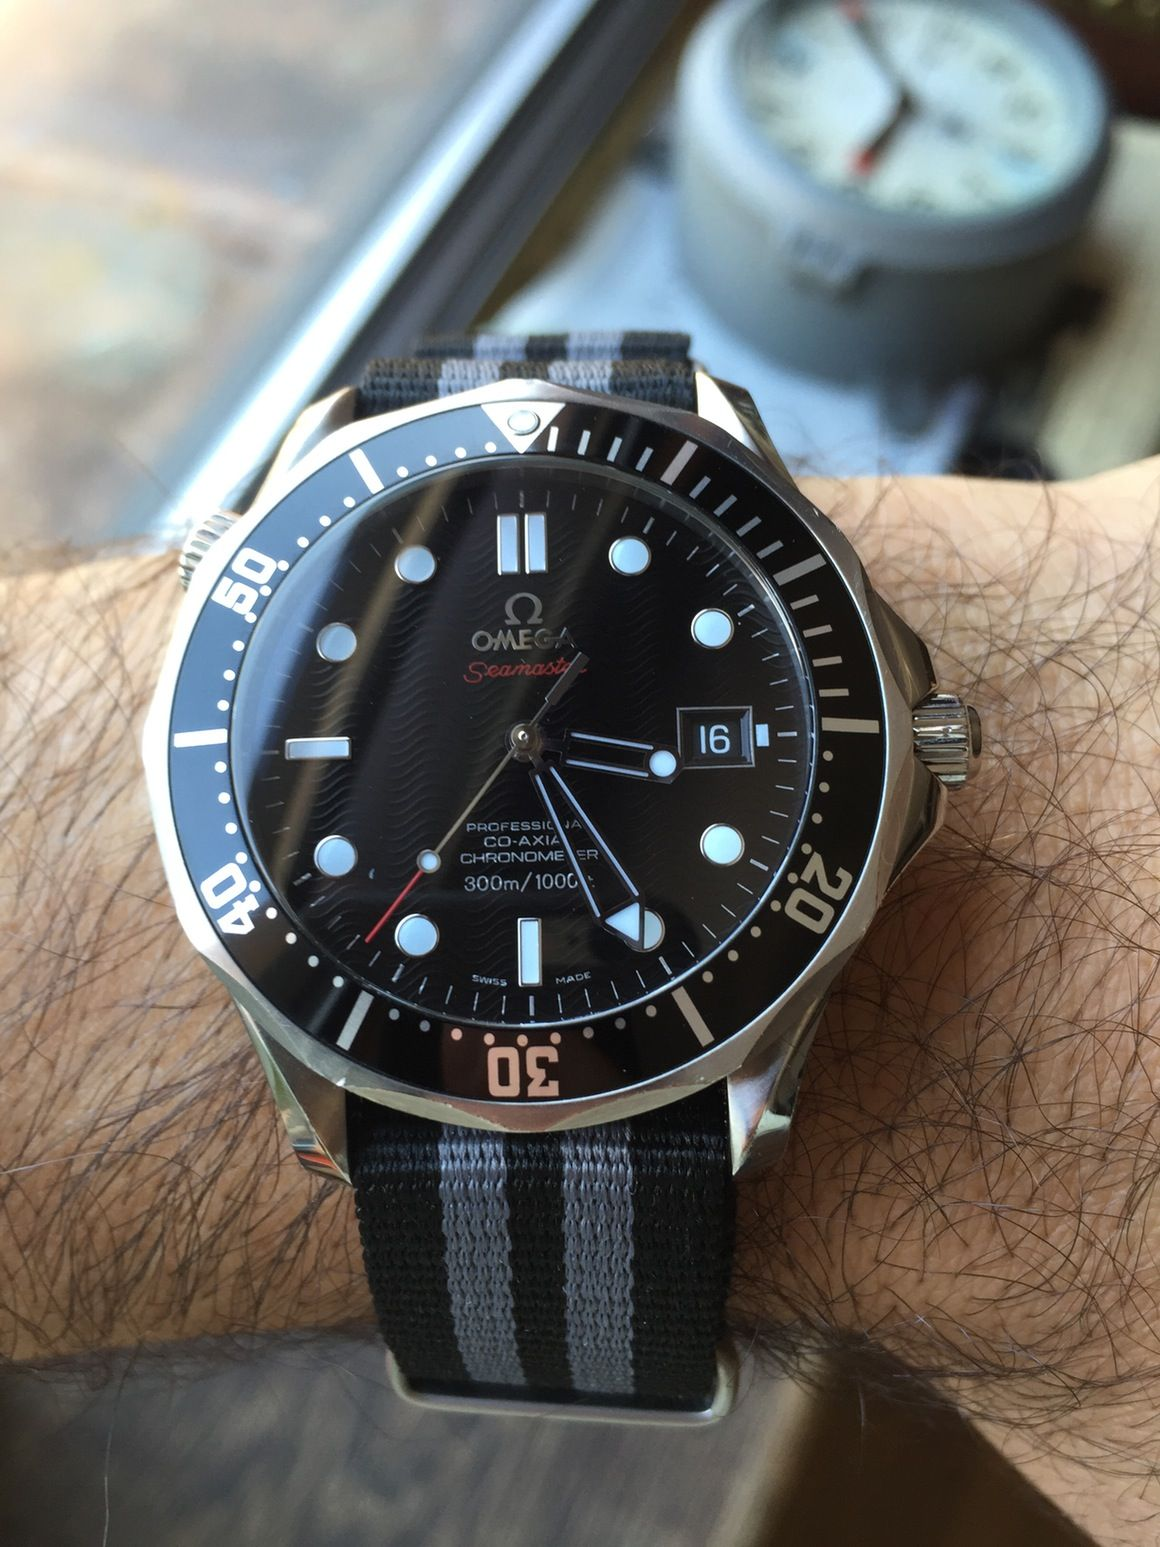 of coffman watch judge seiko blog favorite watches mark